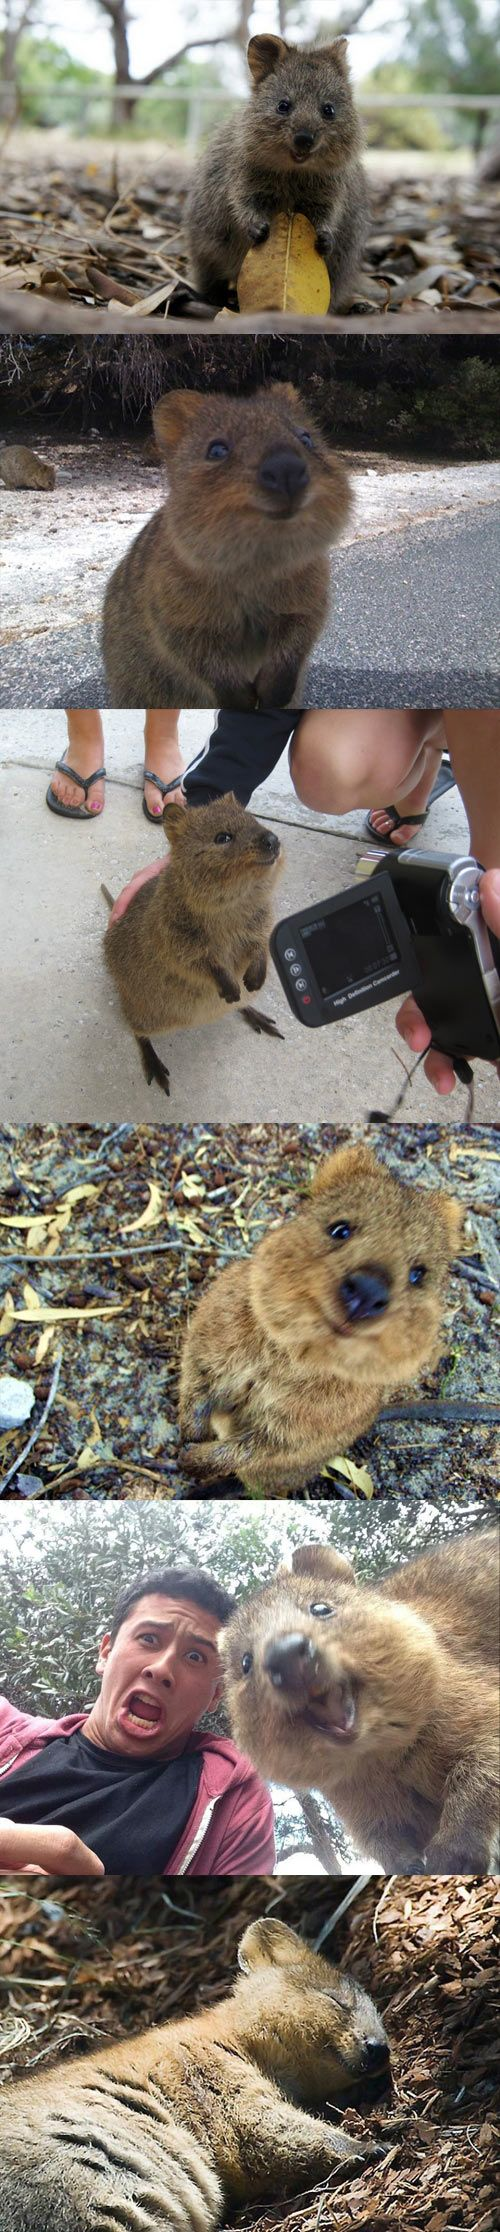 quokka the happiest looking animal ever? Australia